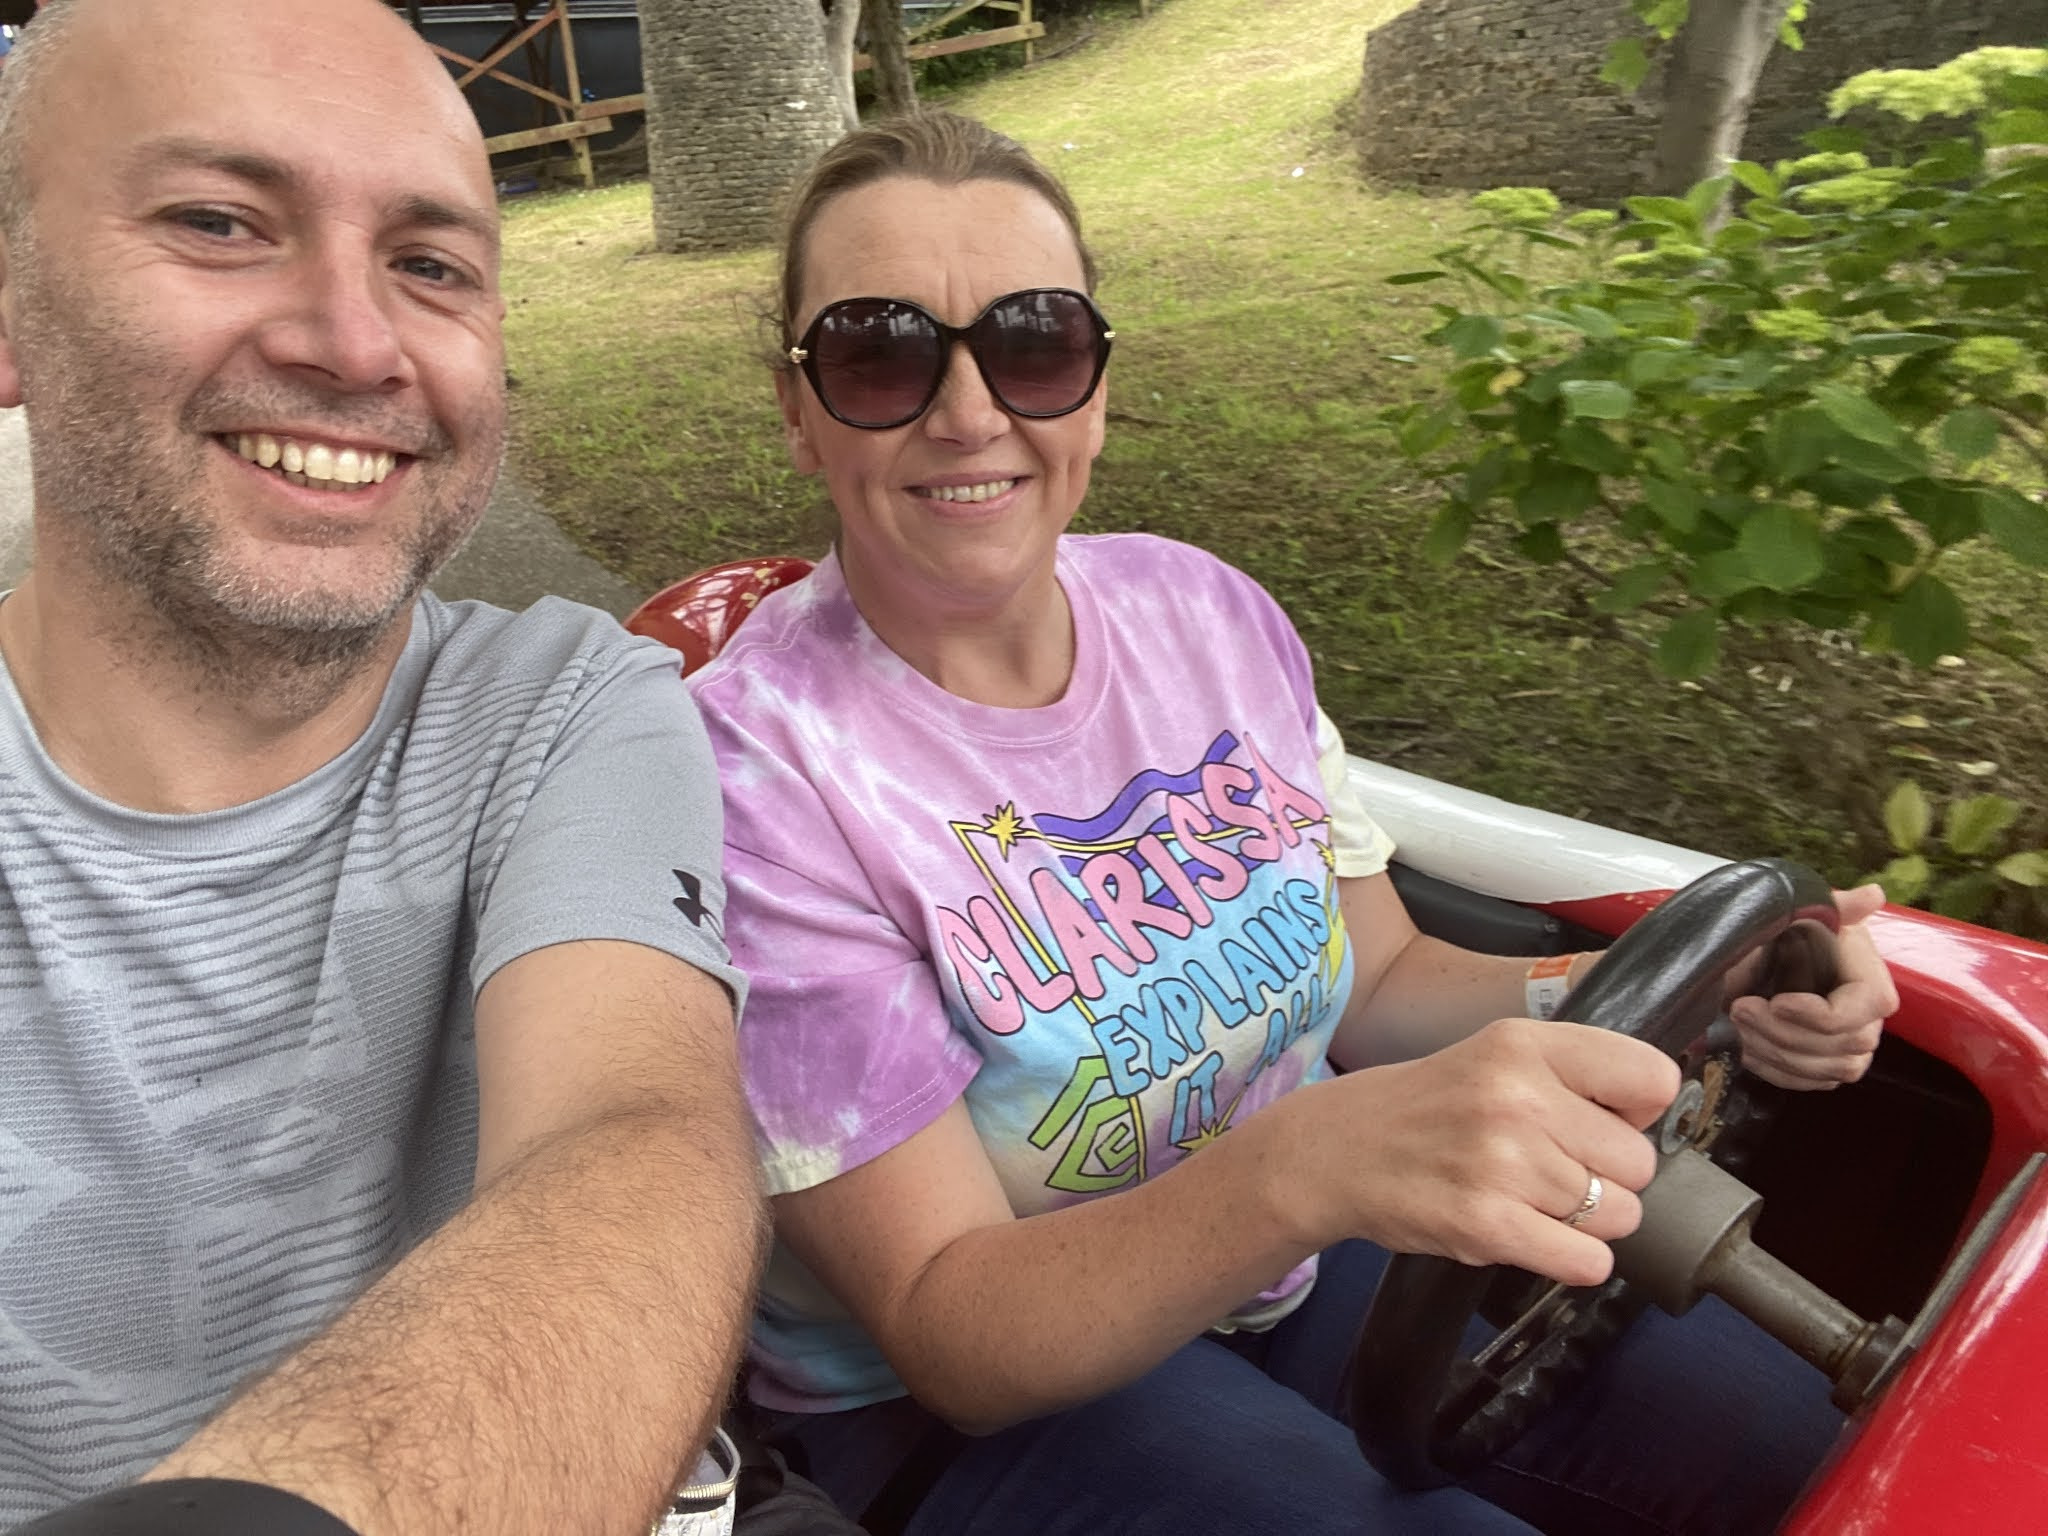 man and woman in a fairground car